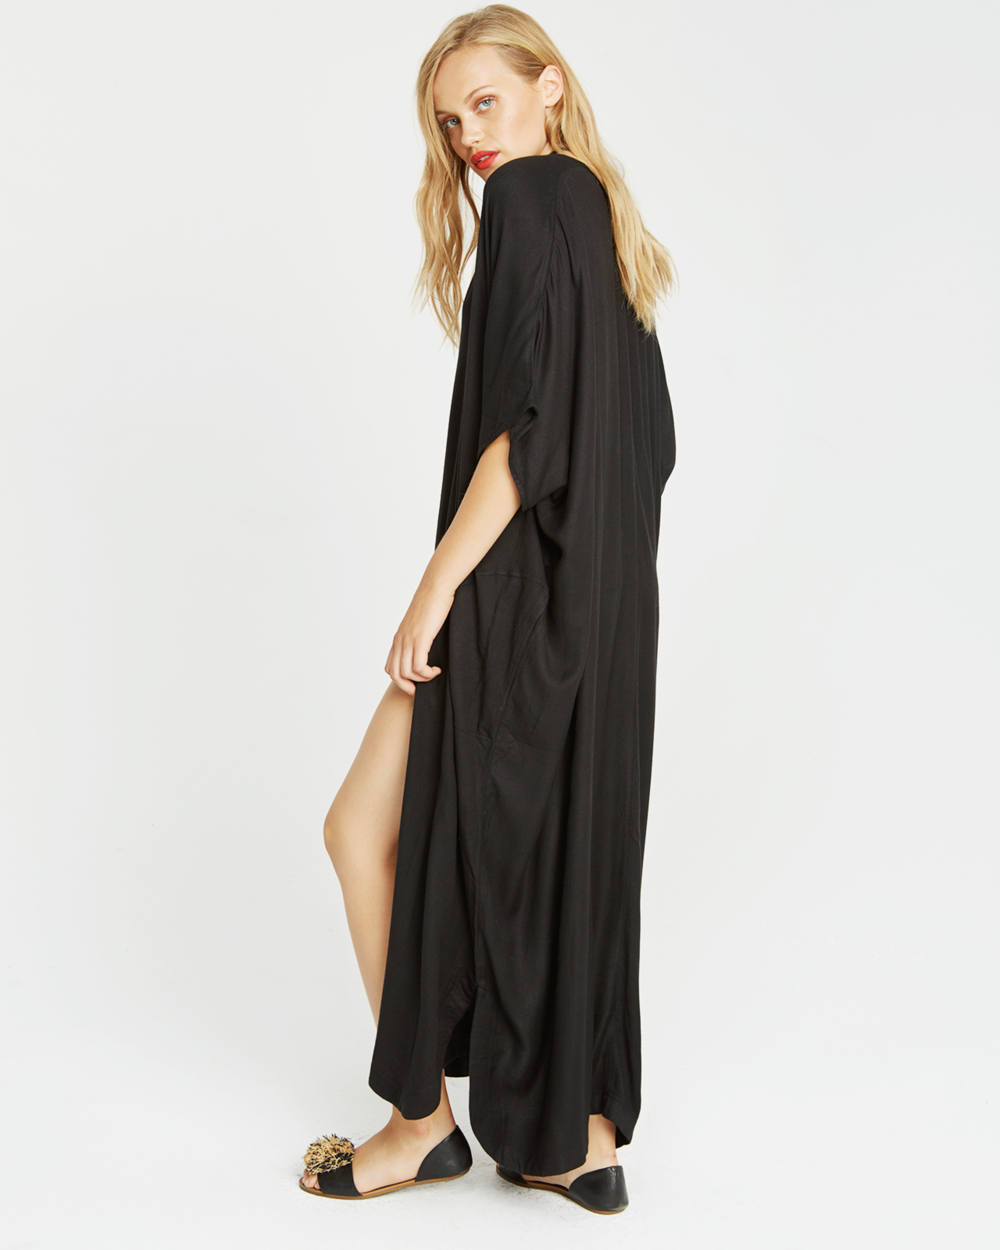 Patti Dress Black 2.png